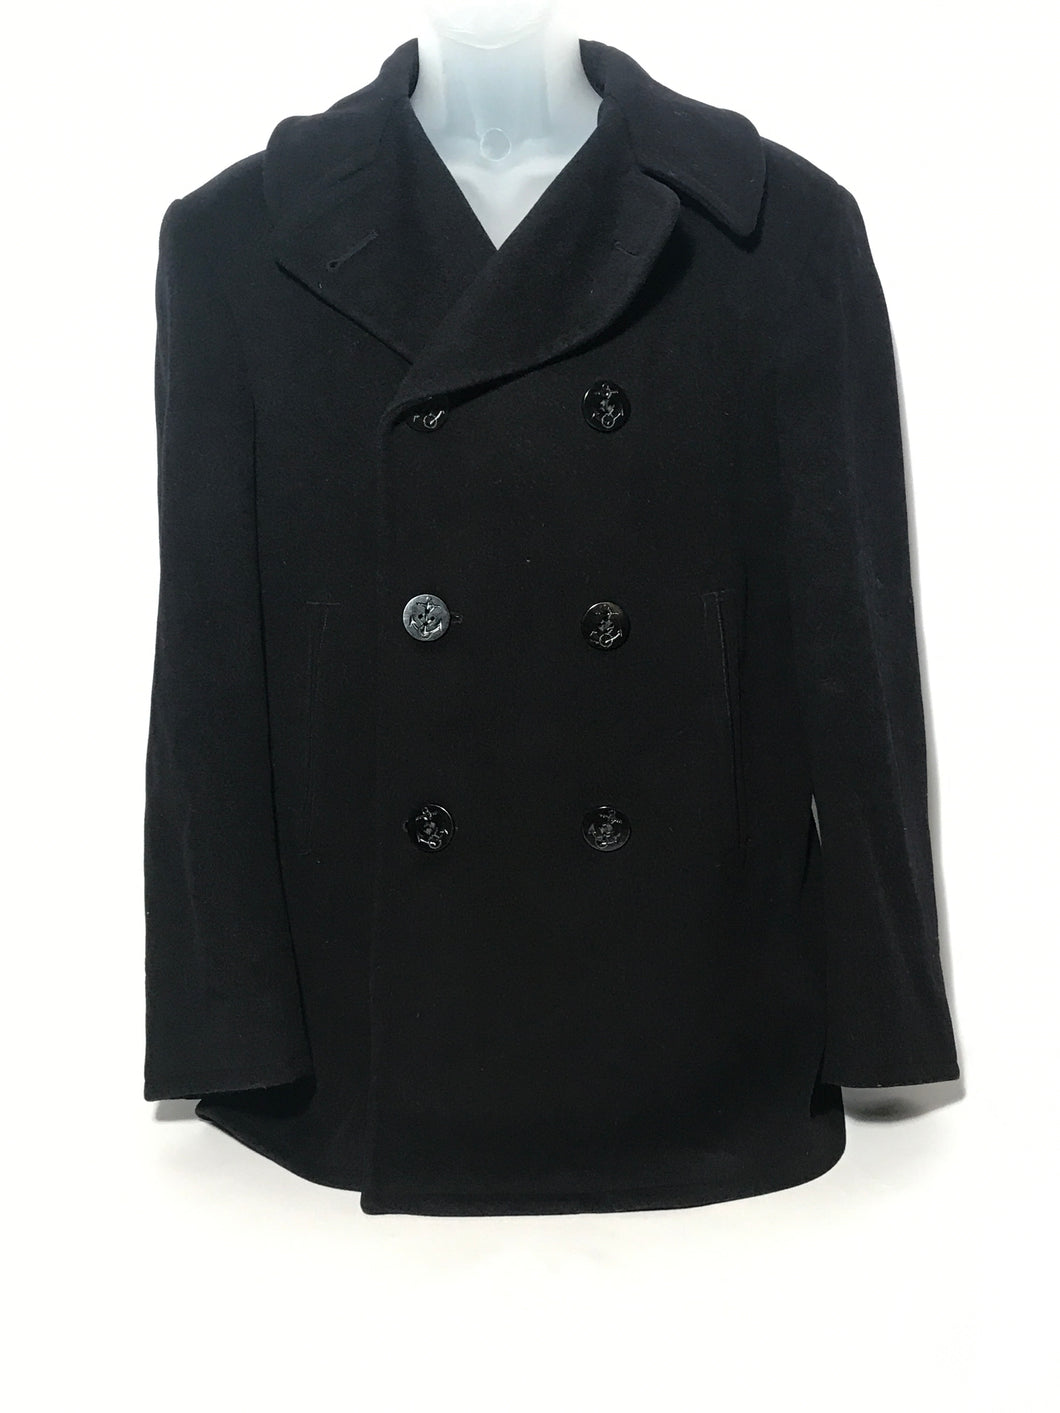 1960s Official Wool U.S. Navy Peacoat Double Breasted Size 36R